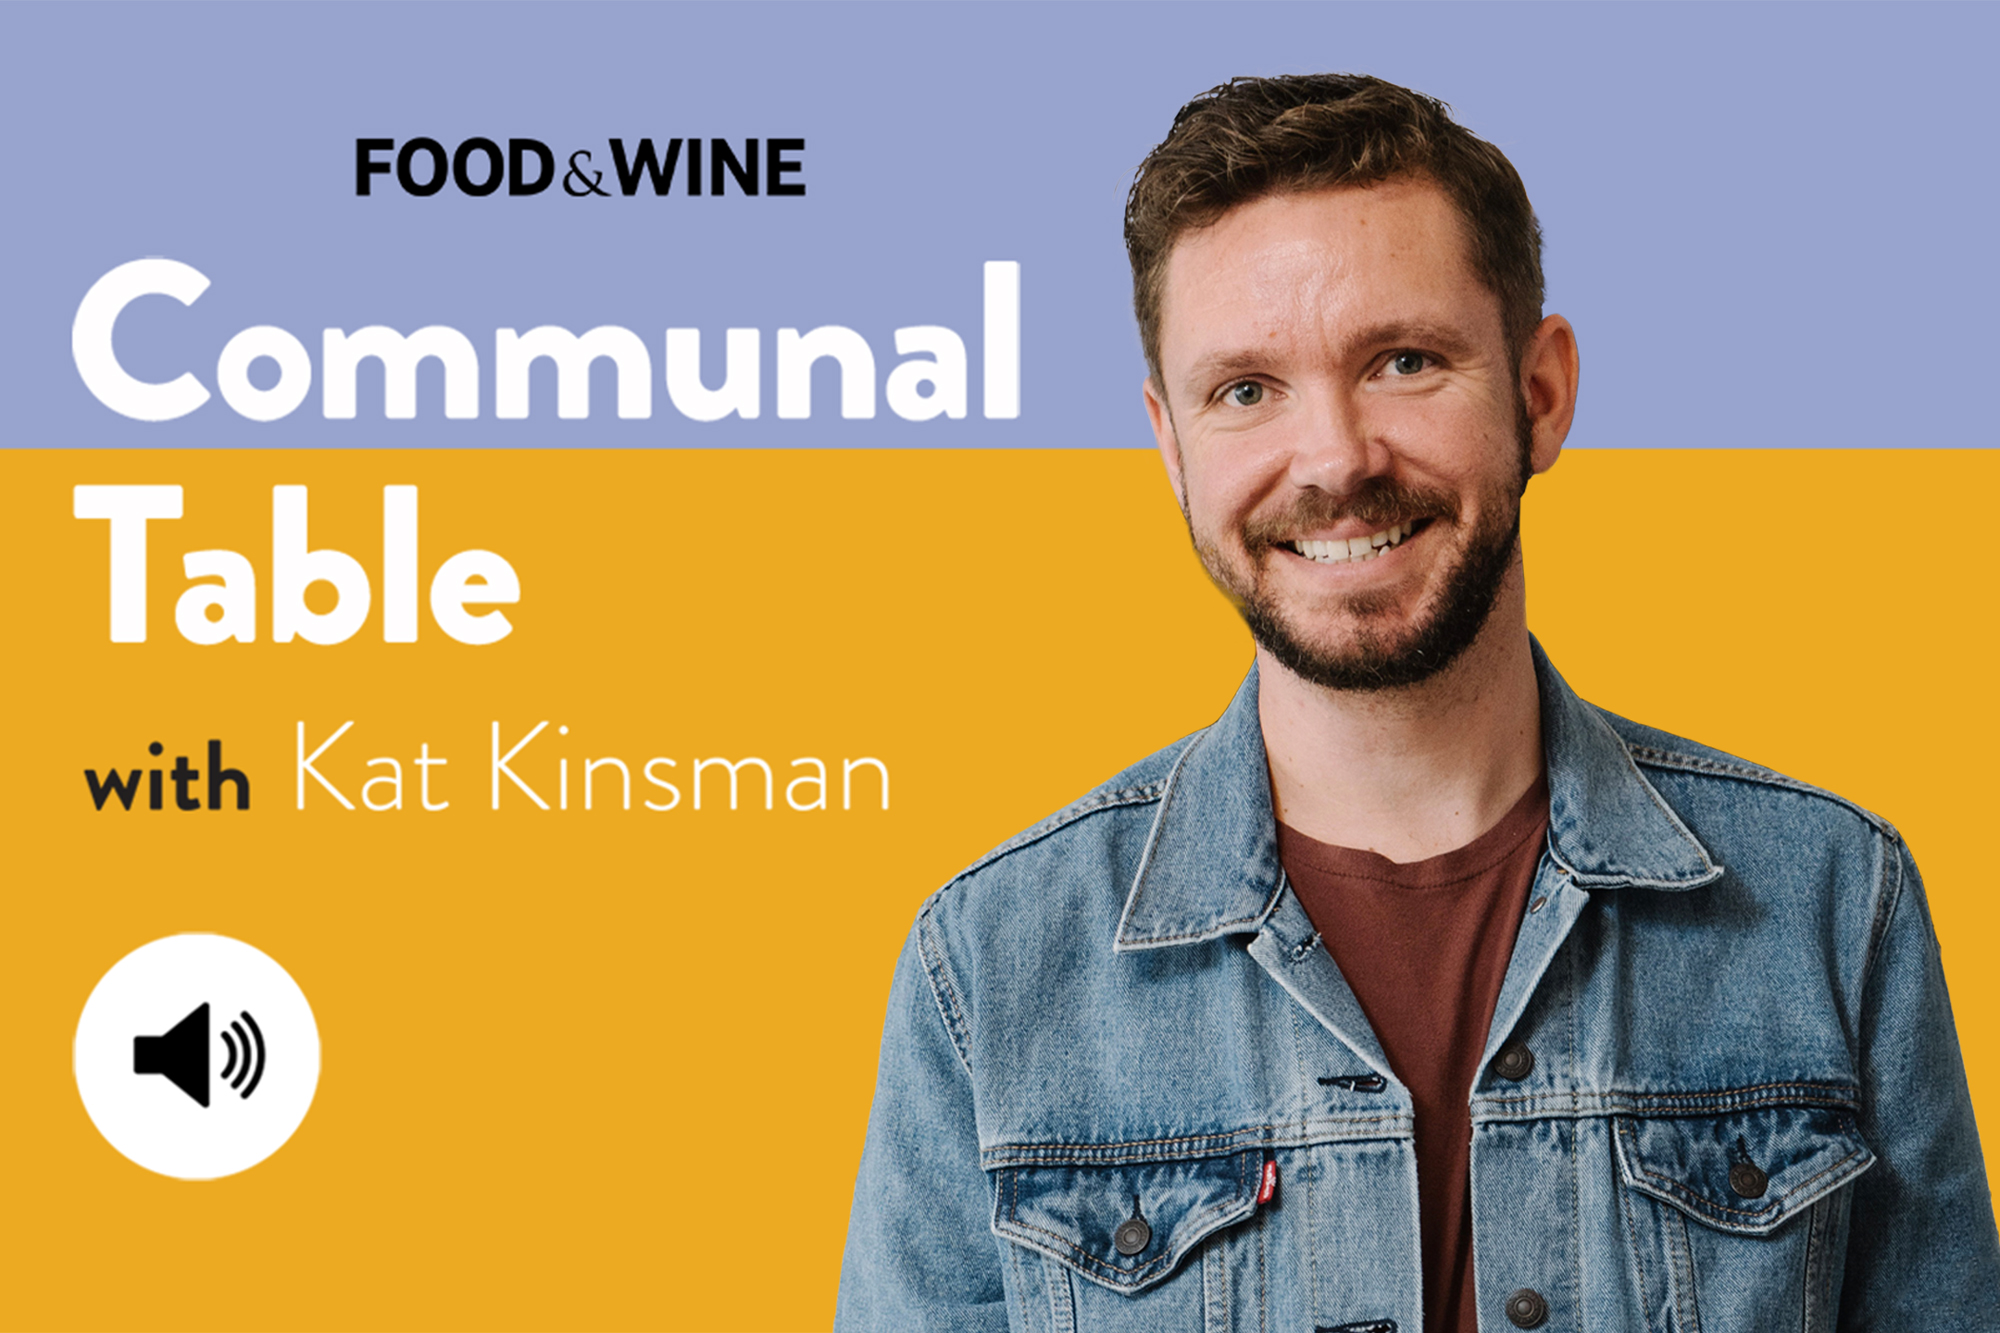 Communal Table with Kat Kinsman featuring Justin Burke